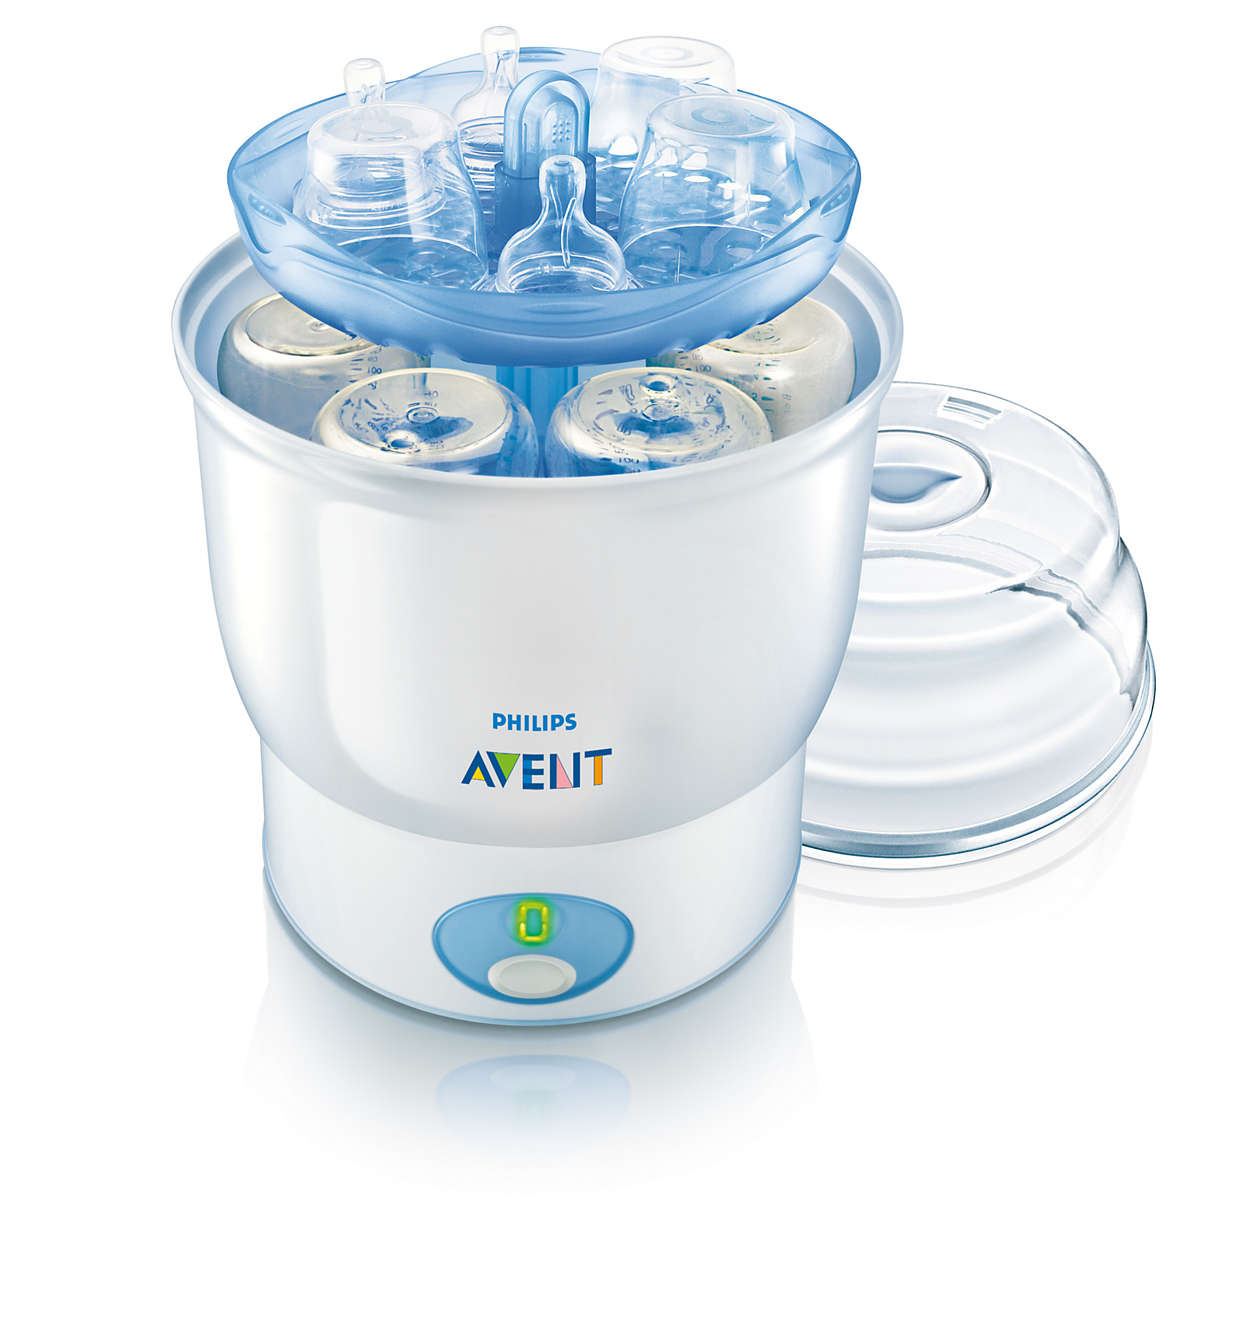 philips avent electric steam sterilizer instructions